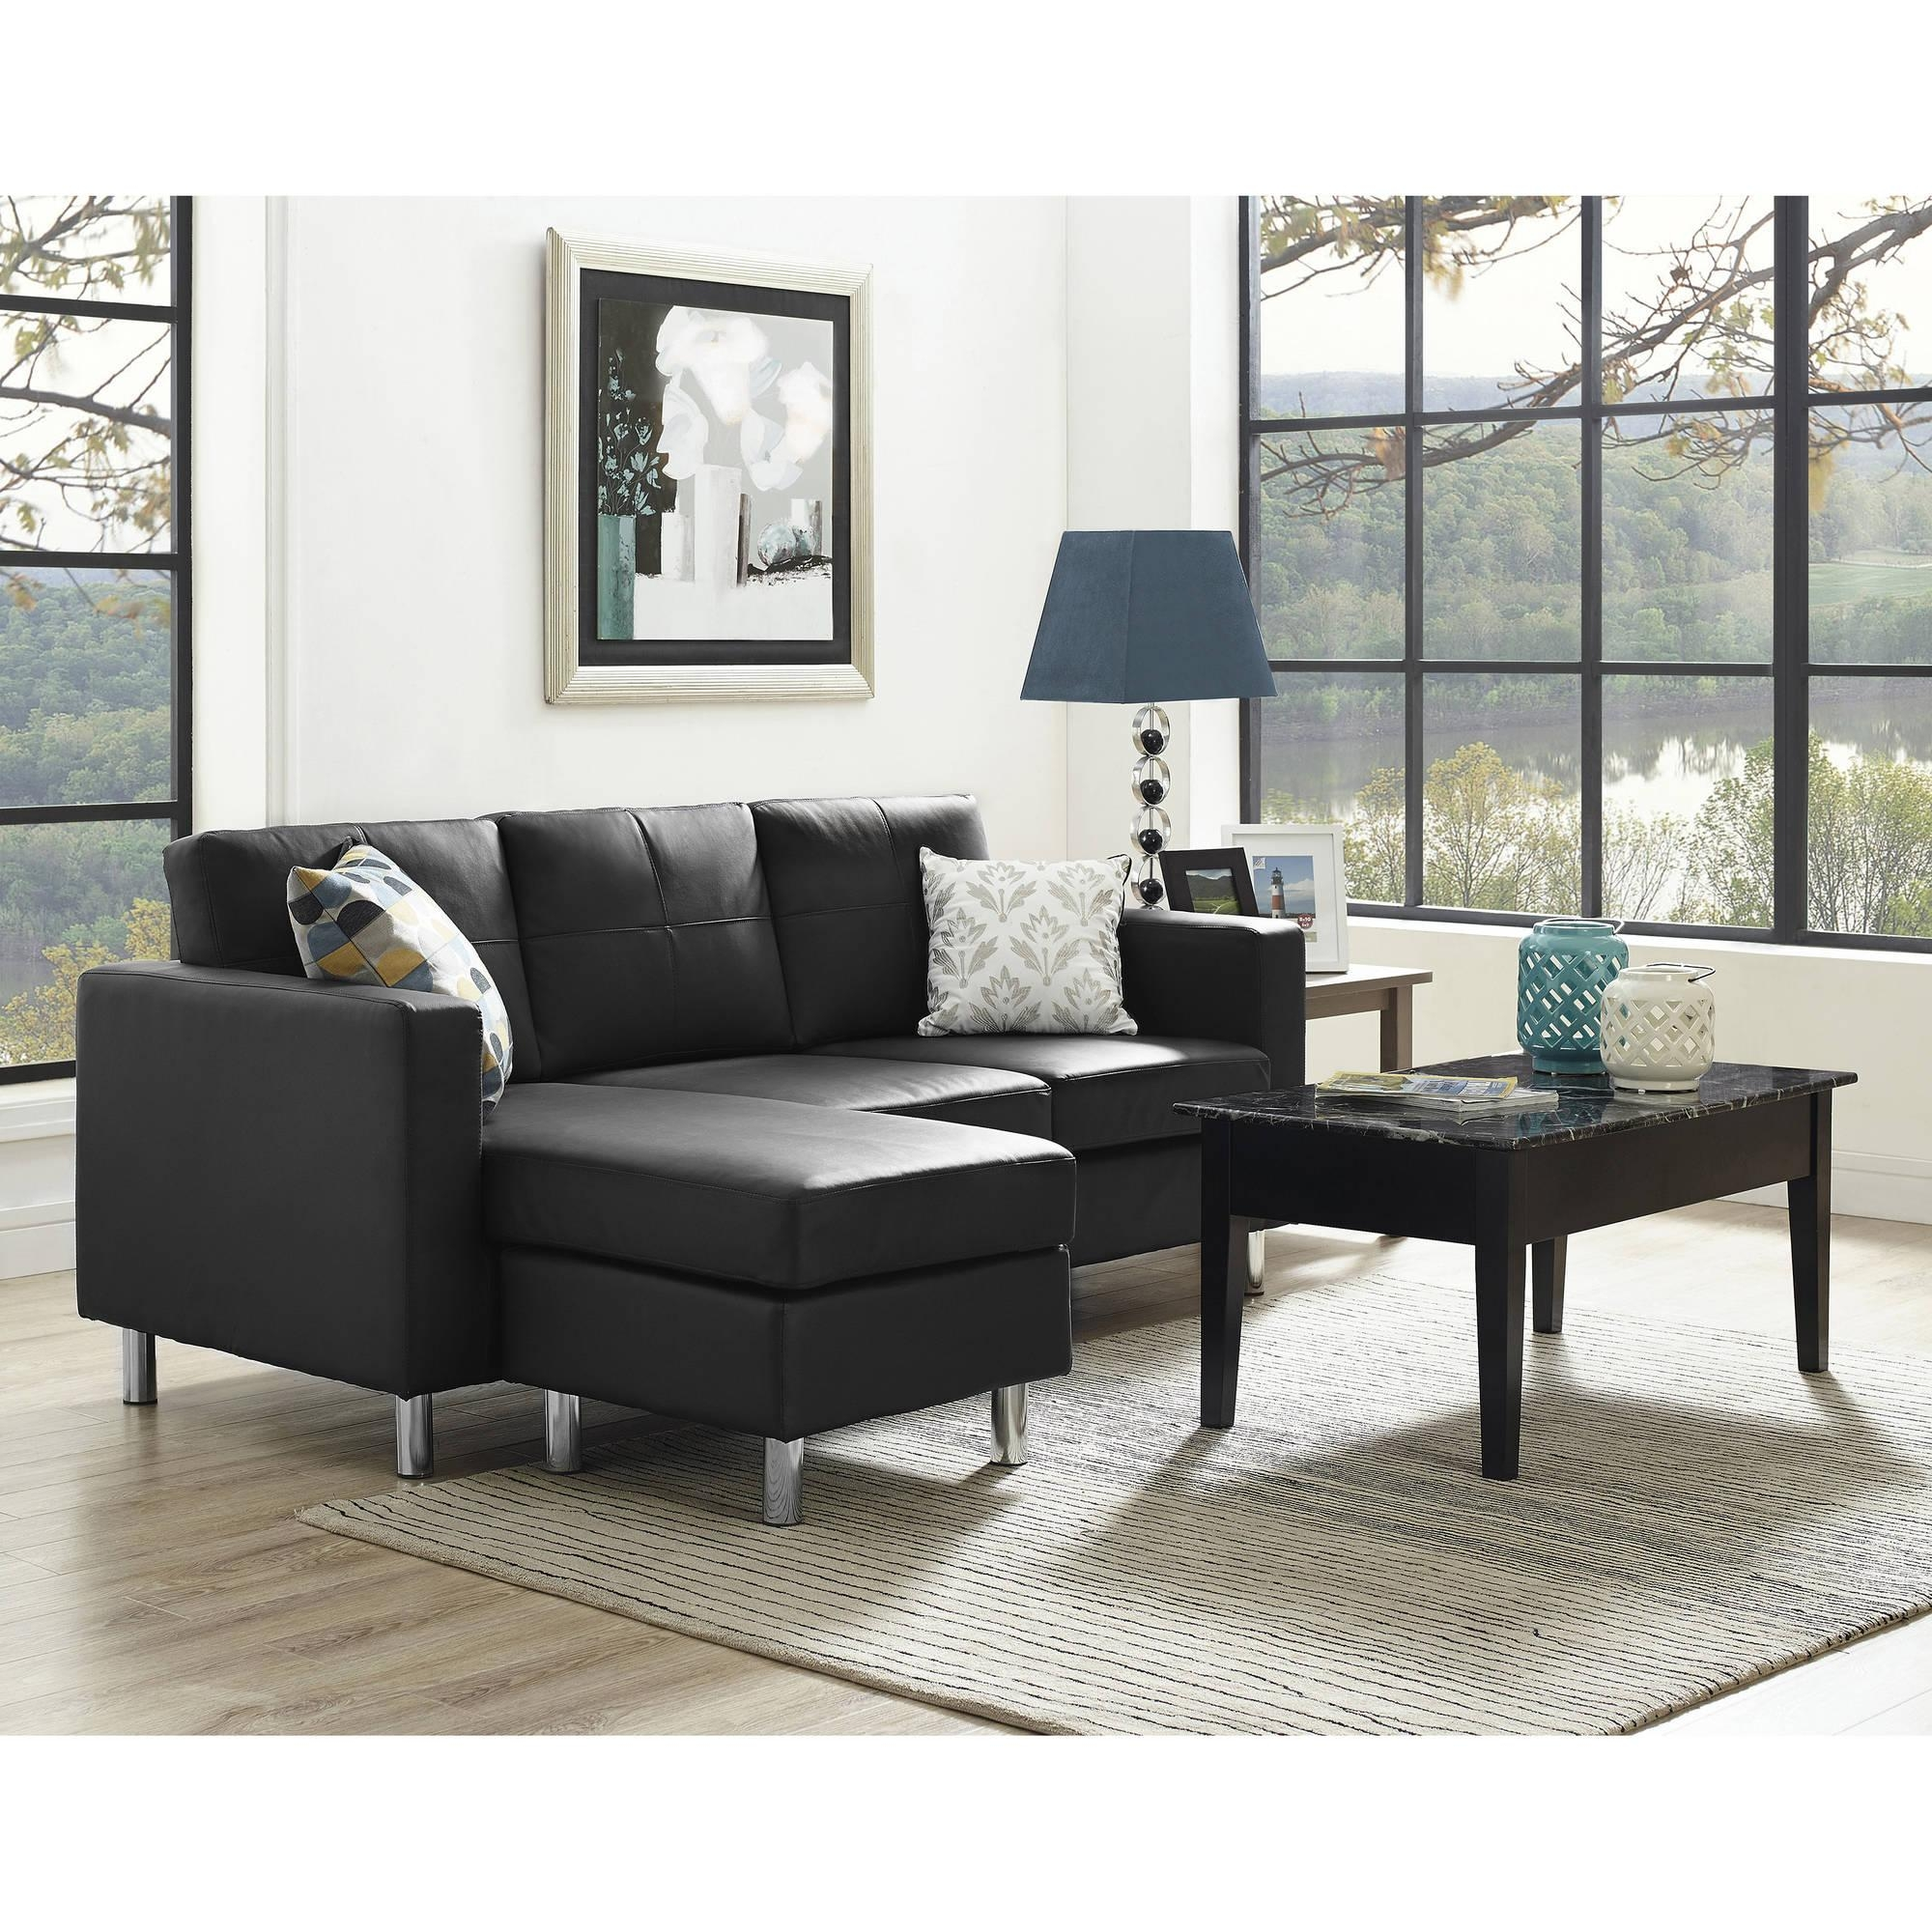 Dorel Living Small Spaces Configurable Sectional Sofa, Multiple Regarding Colored Sectionals (View 10 of 15)